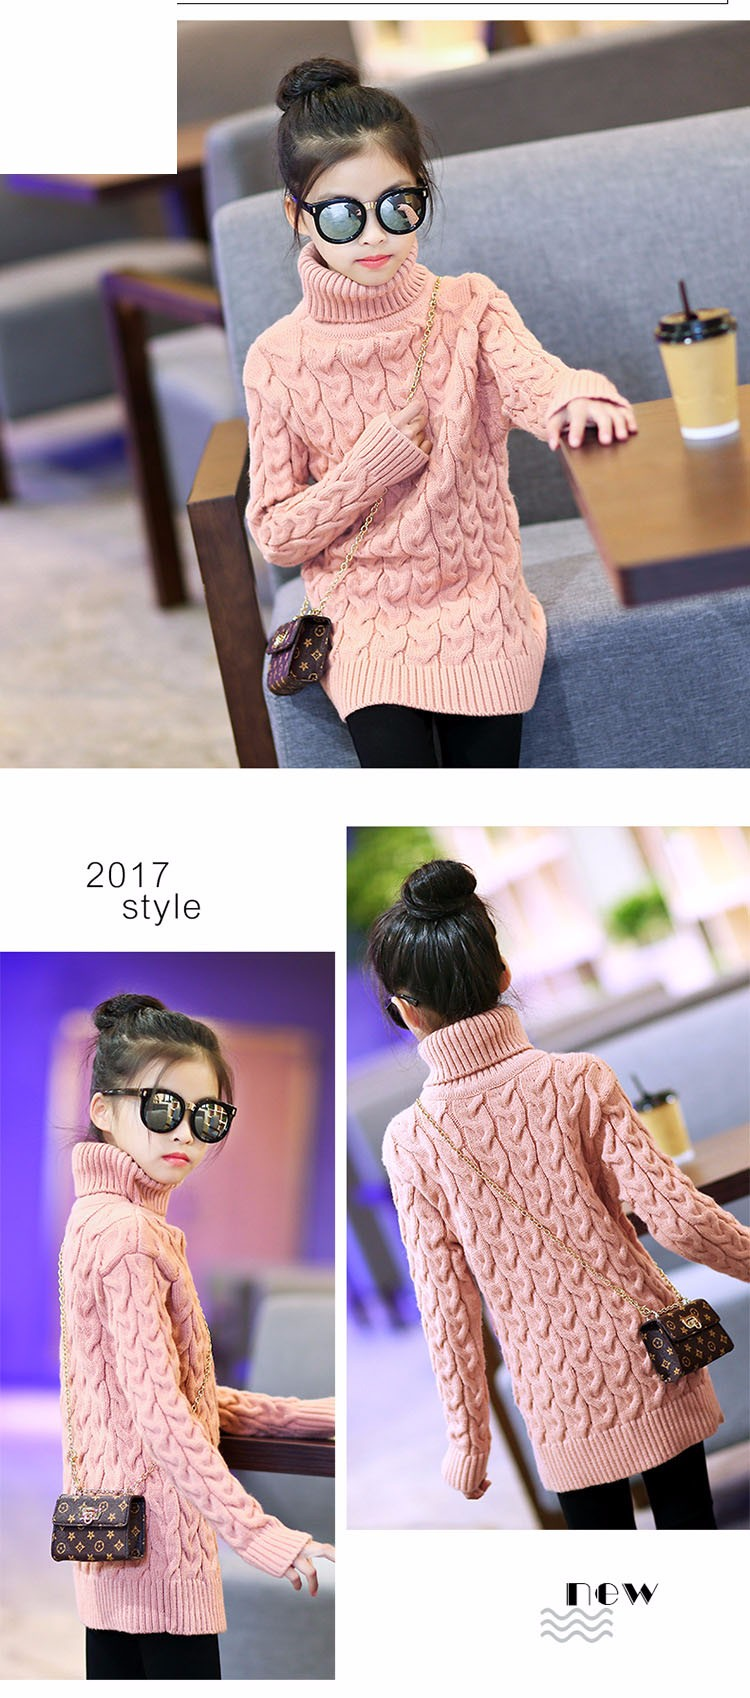 2017 new high neck long knitting girls sweater spring autumn winter turtleneck knitted children sweaters kids girls thick red black beige pink tops 7 8 9 10 11 12 13 14 15 years little big teenage girls sweater winter casual children (14)